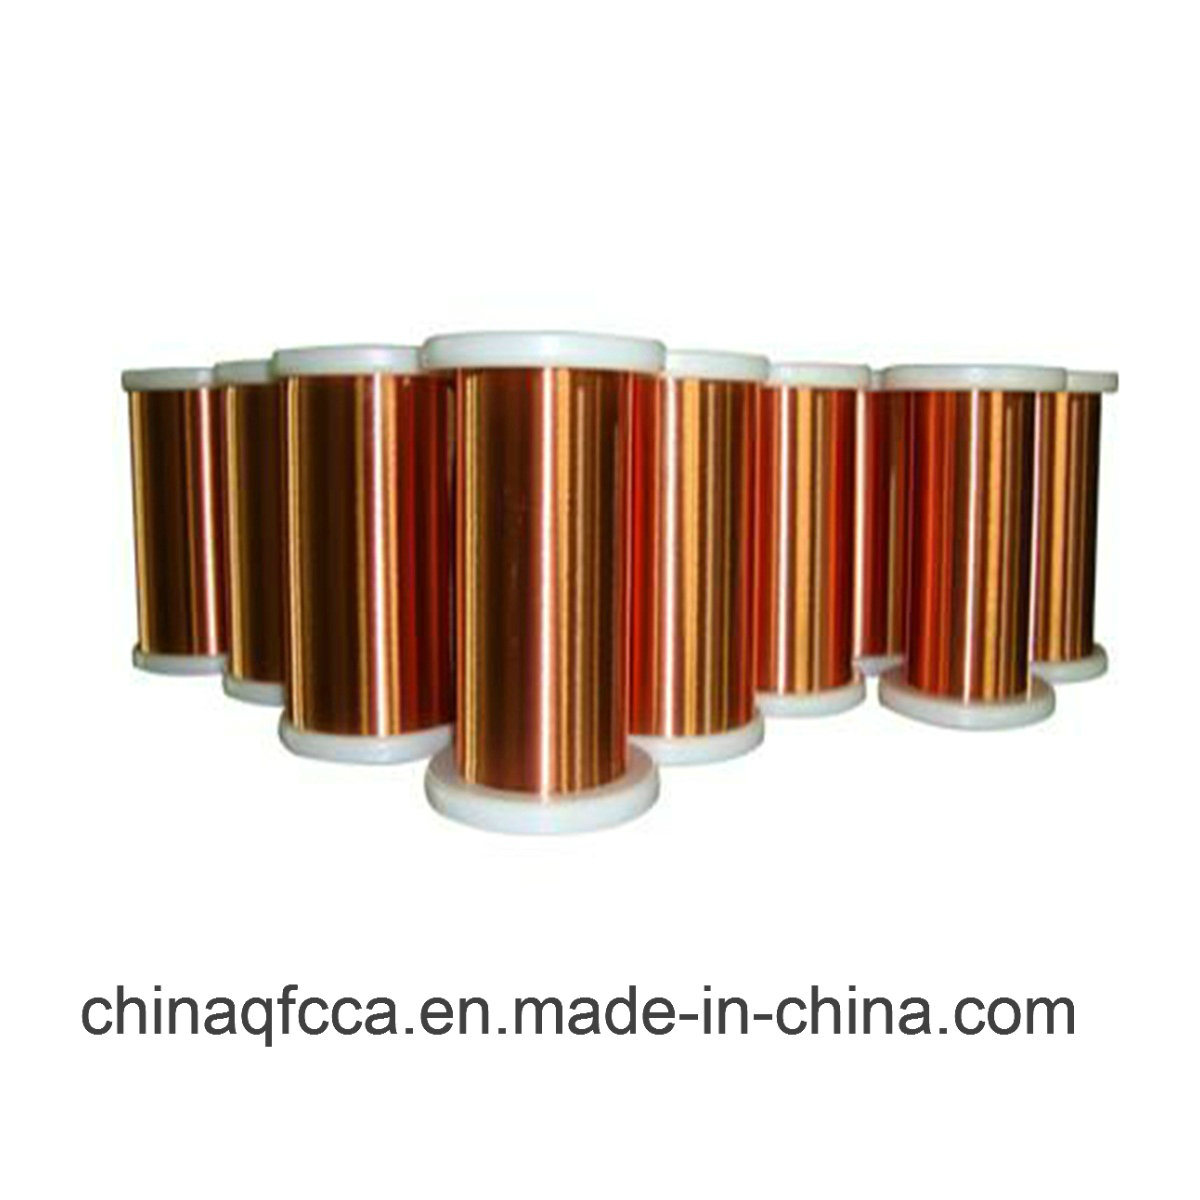 2017 Hot Sale in Sotck Enameled Copper Wire Coil Magnet